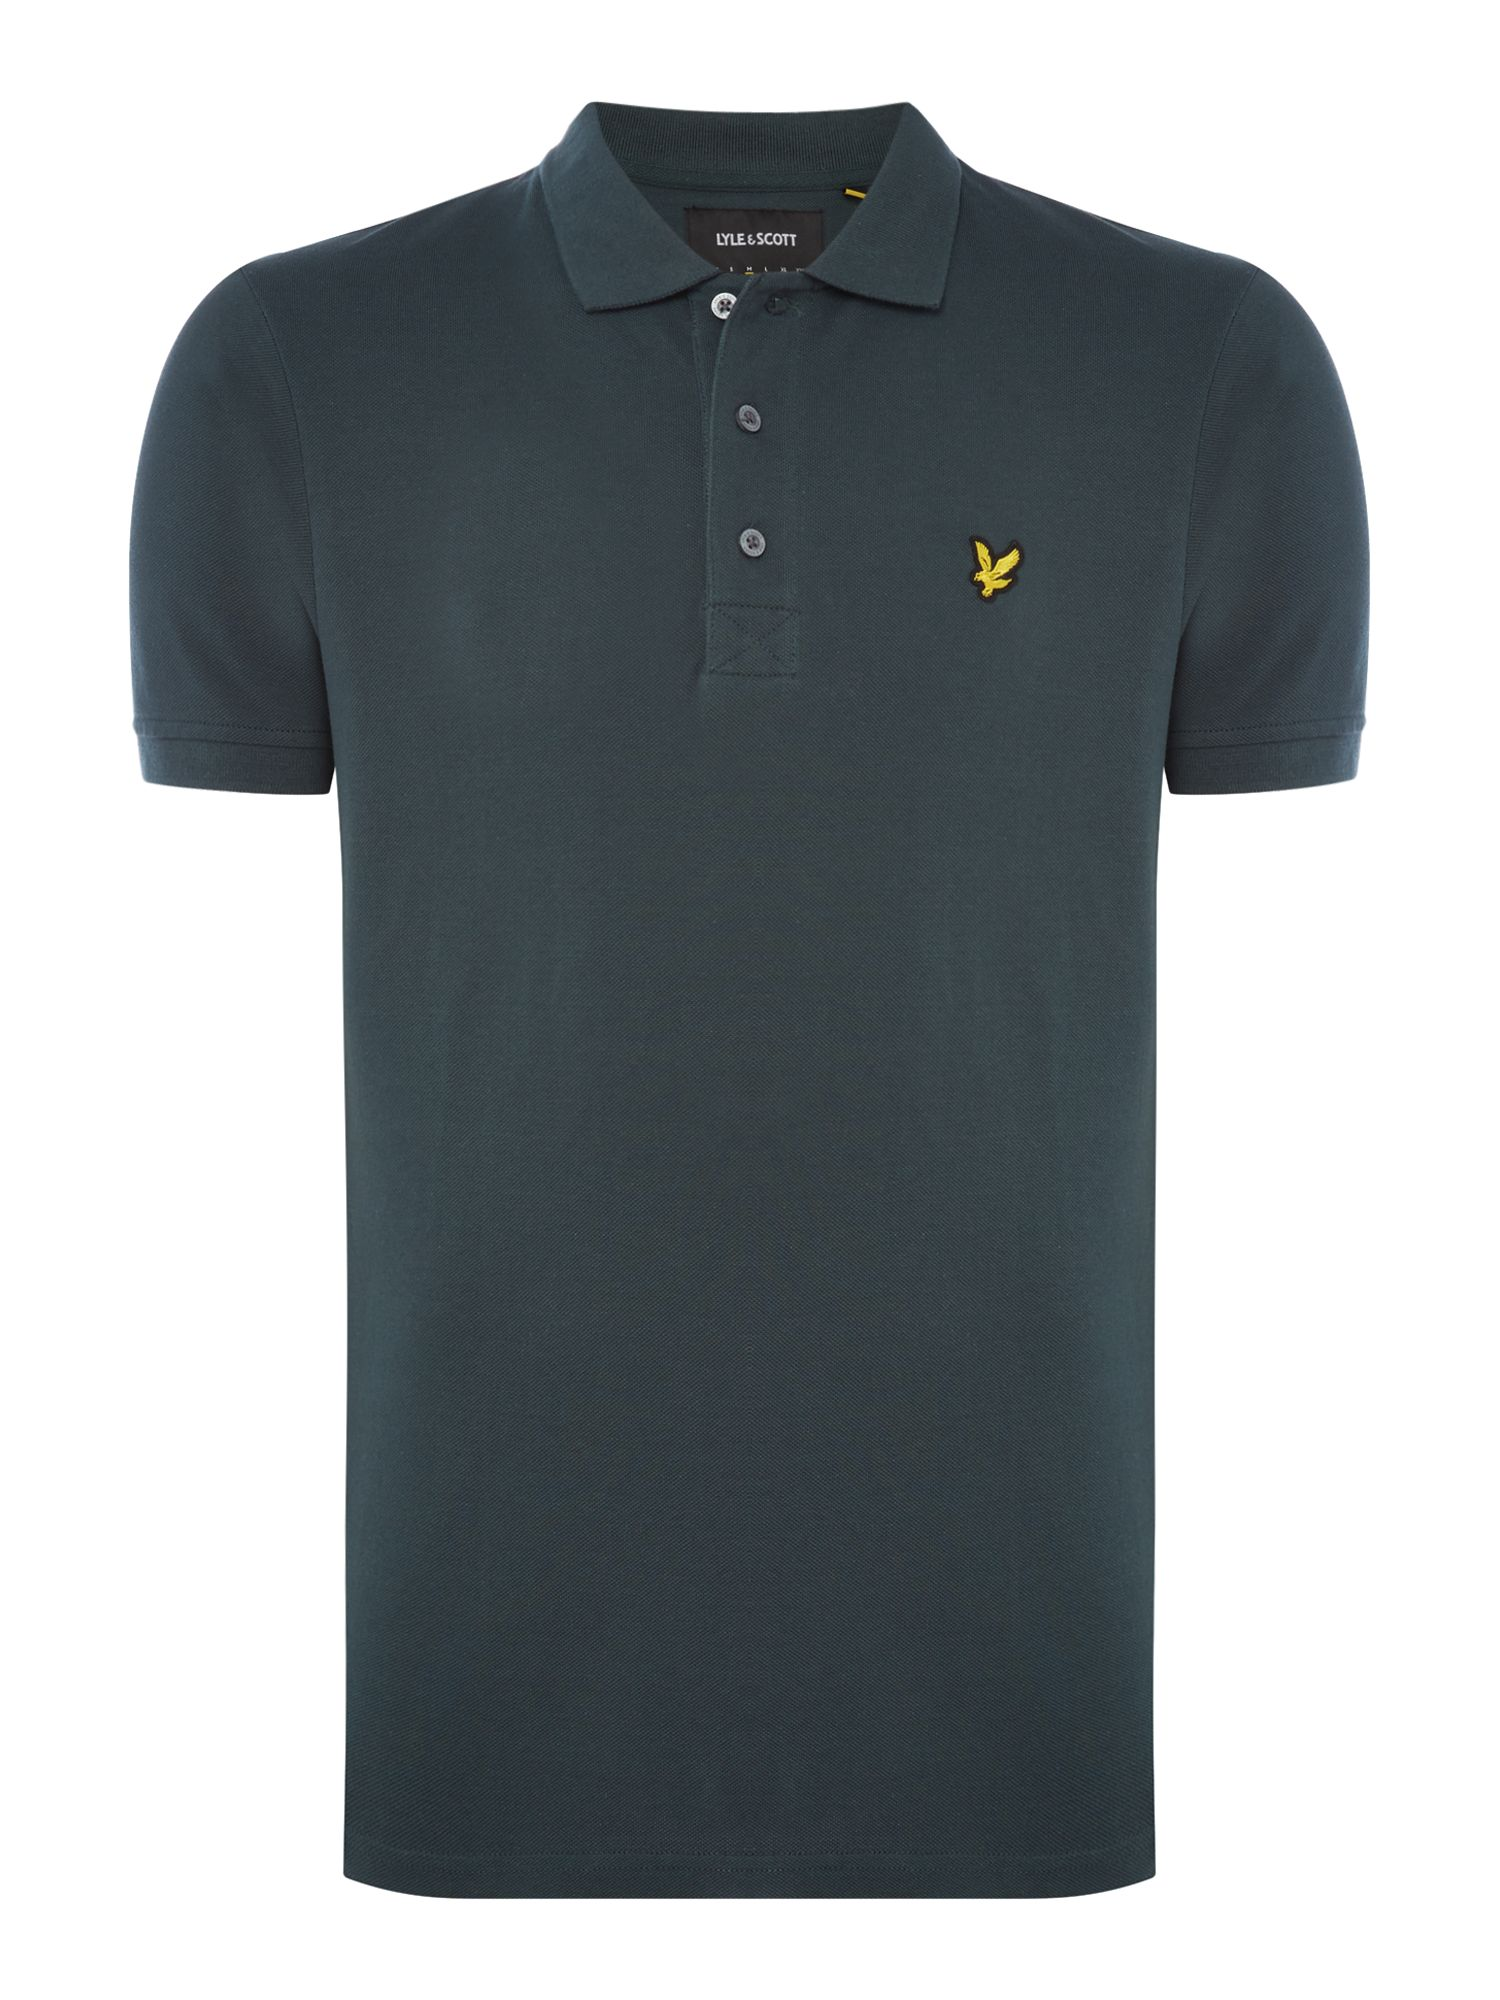 Men's Lyle and Scott Short Sleeve Classic Polo, Green